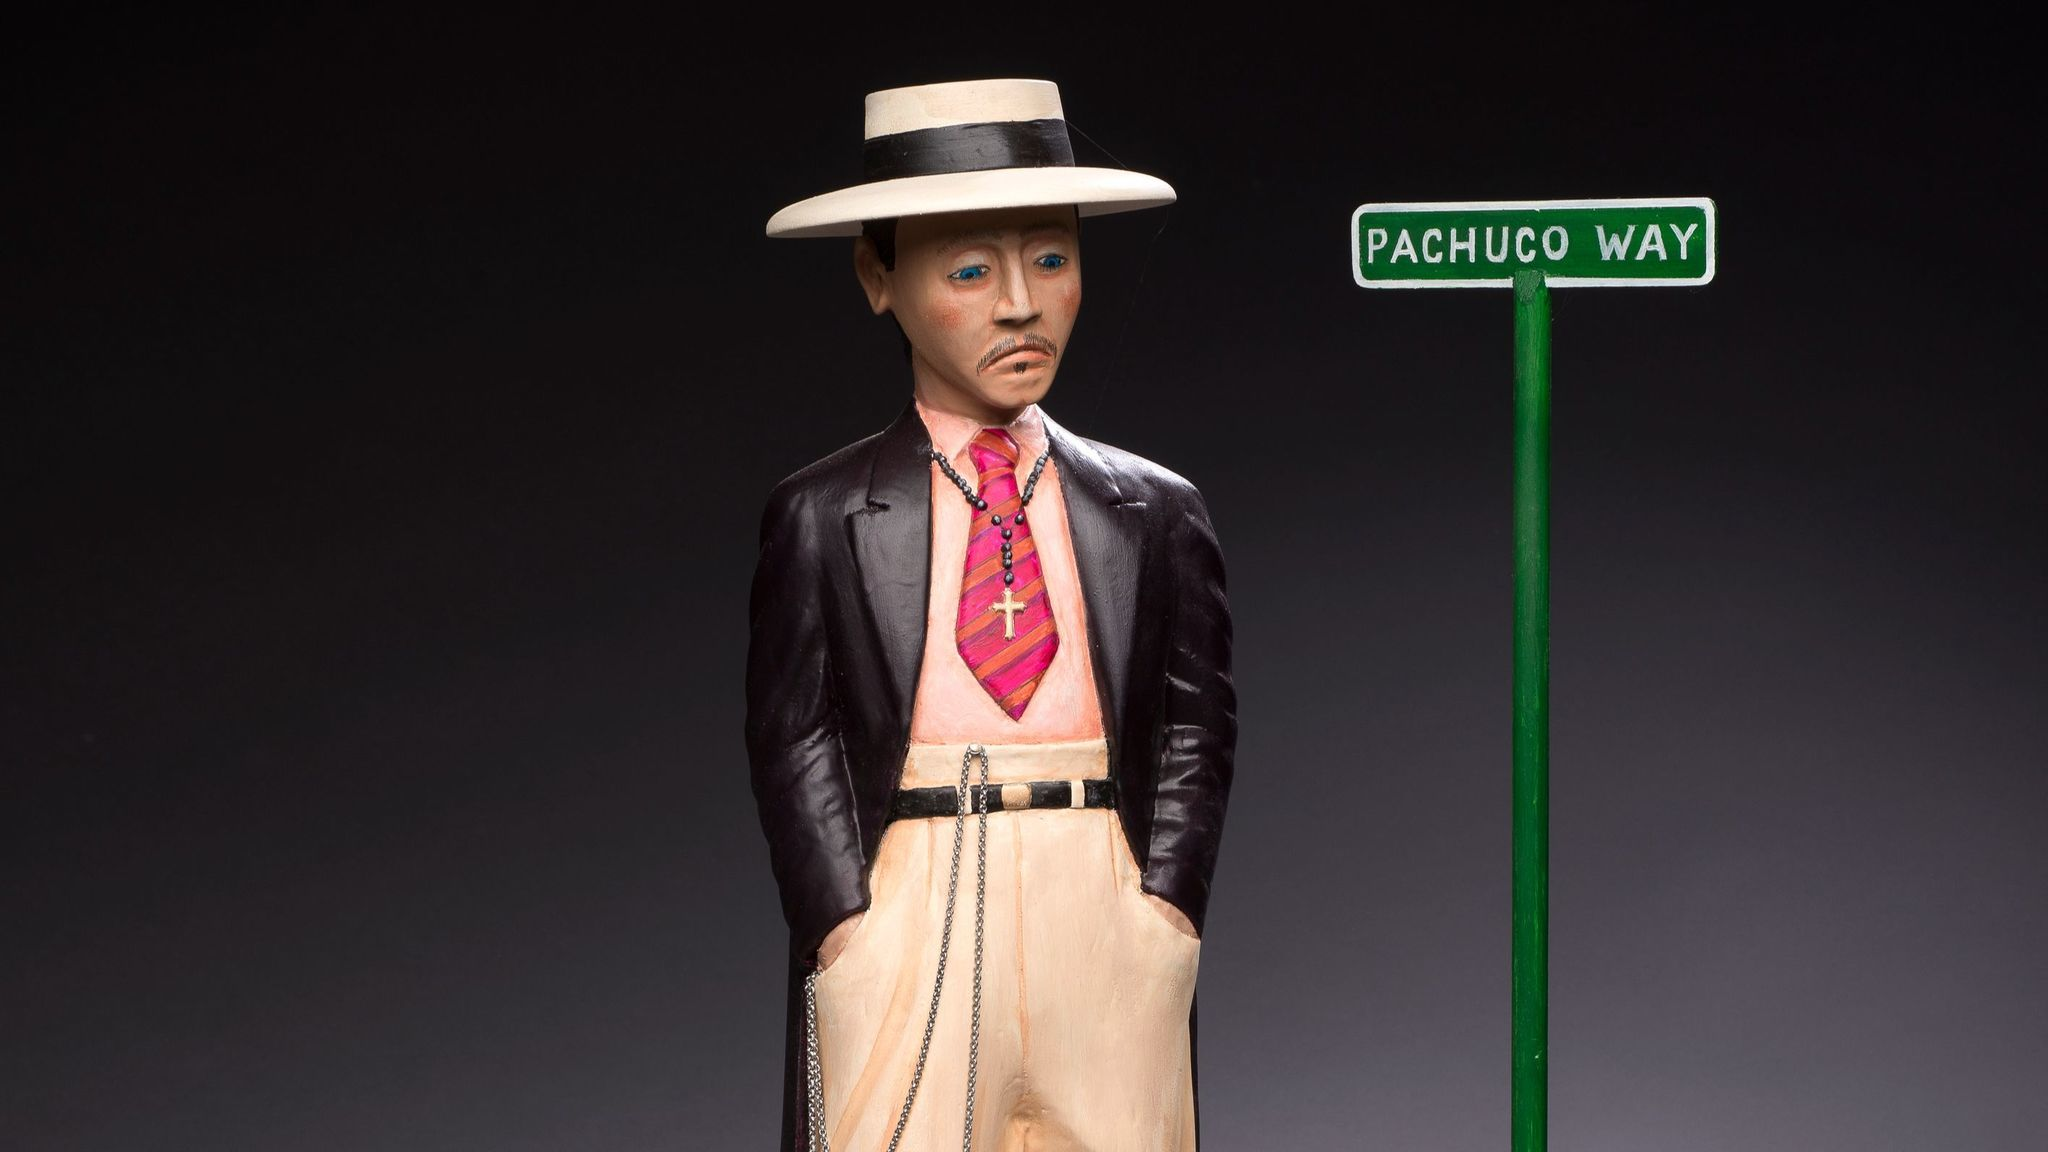 """Pachuco Way,"" 2016, by Luis Tapia, at the Museum of Latin American Art."